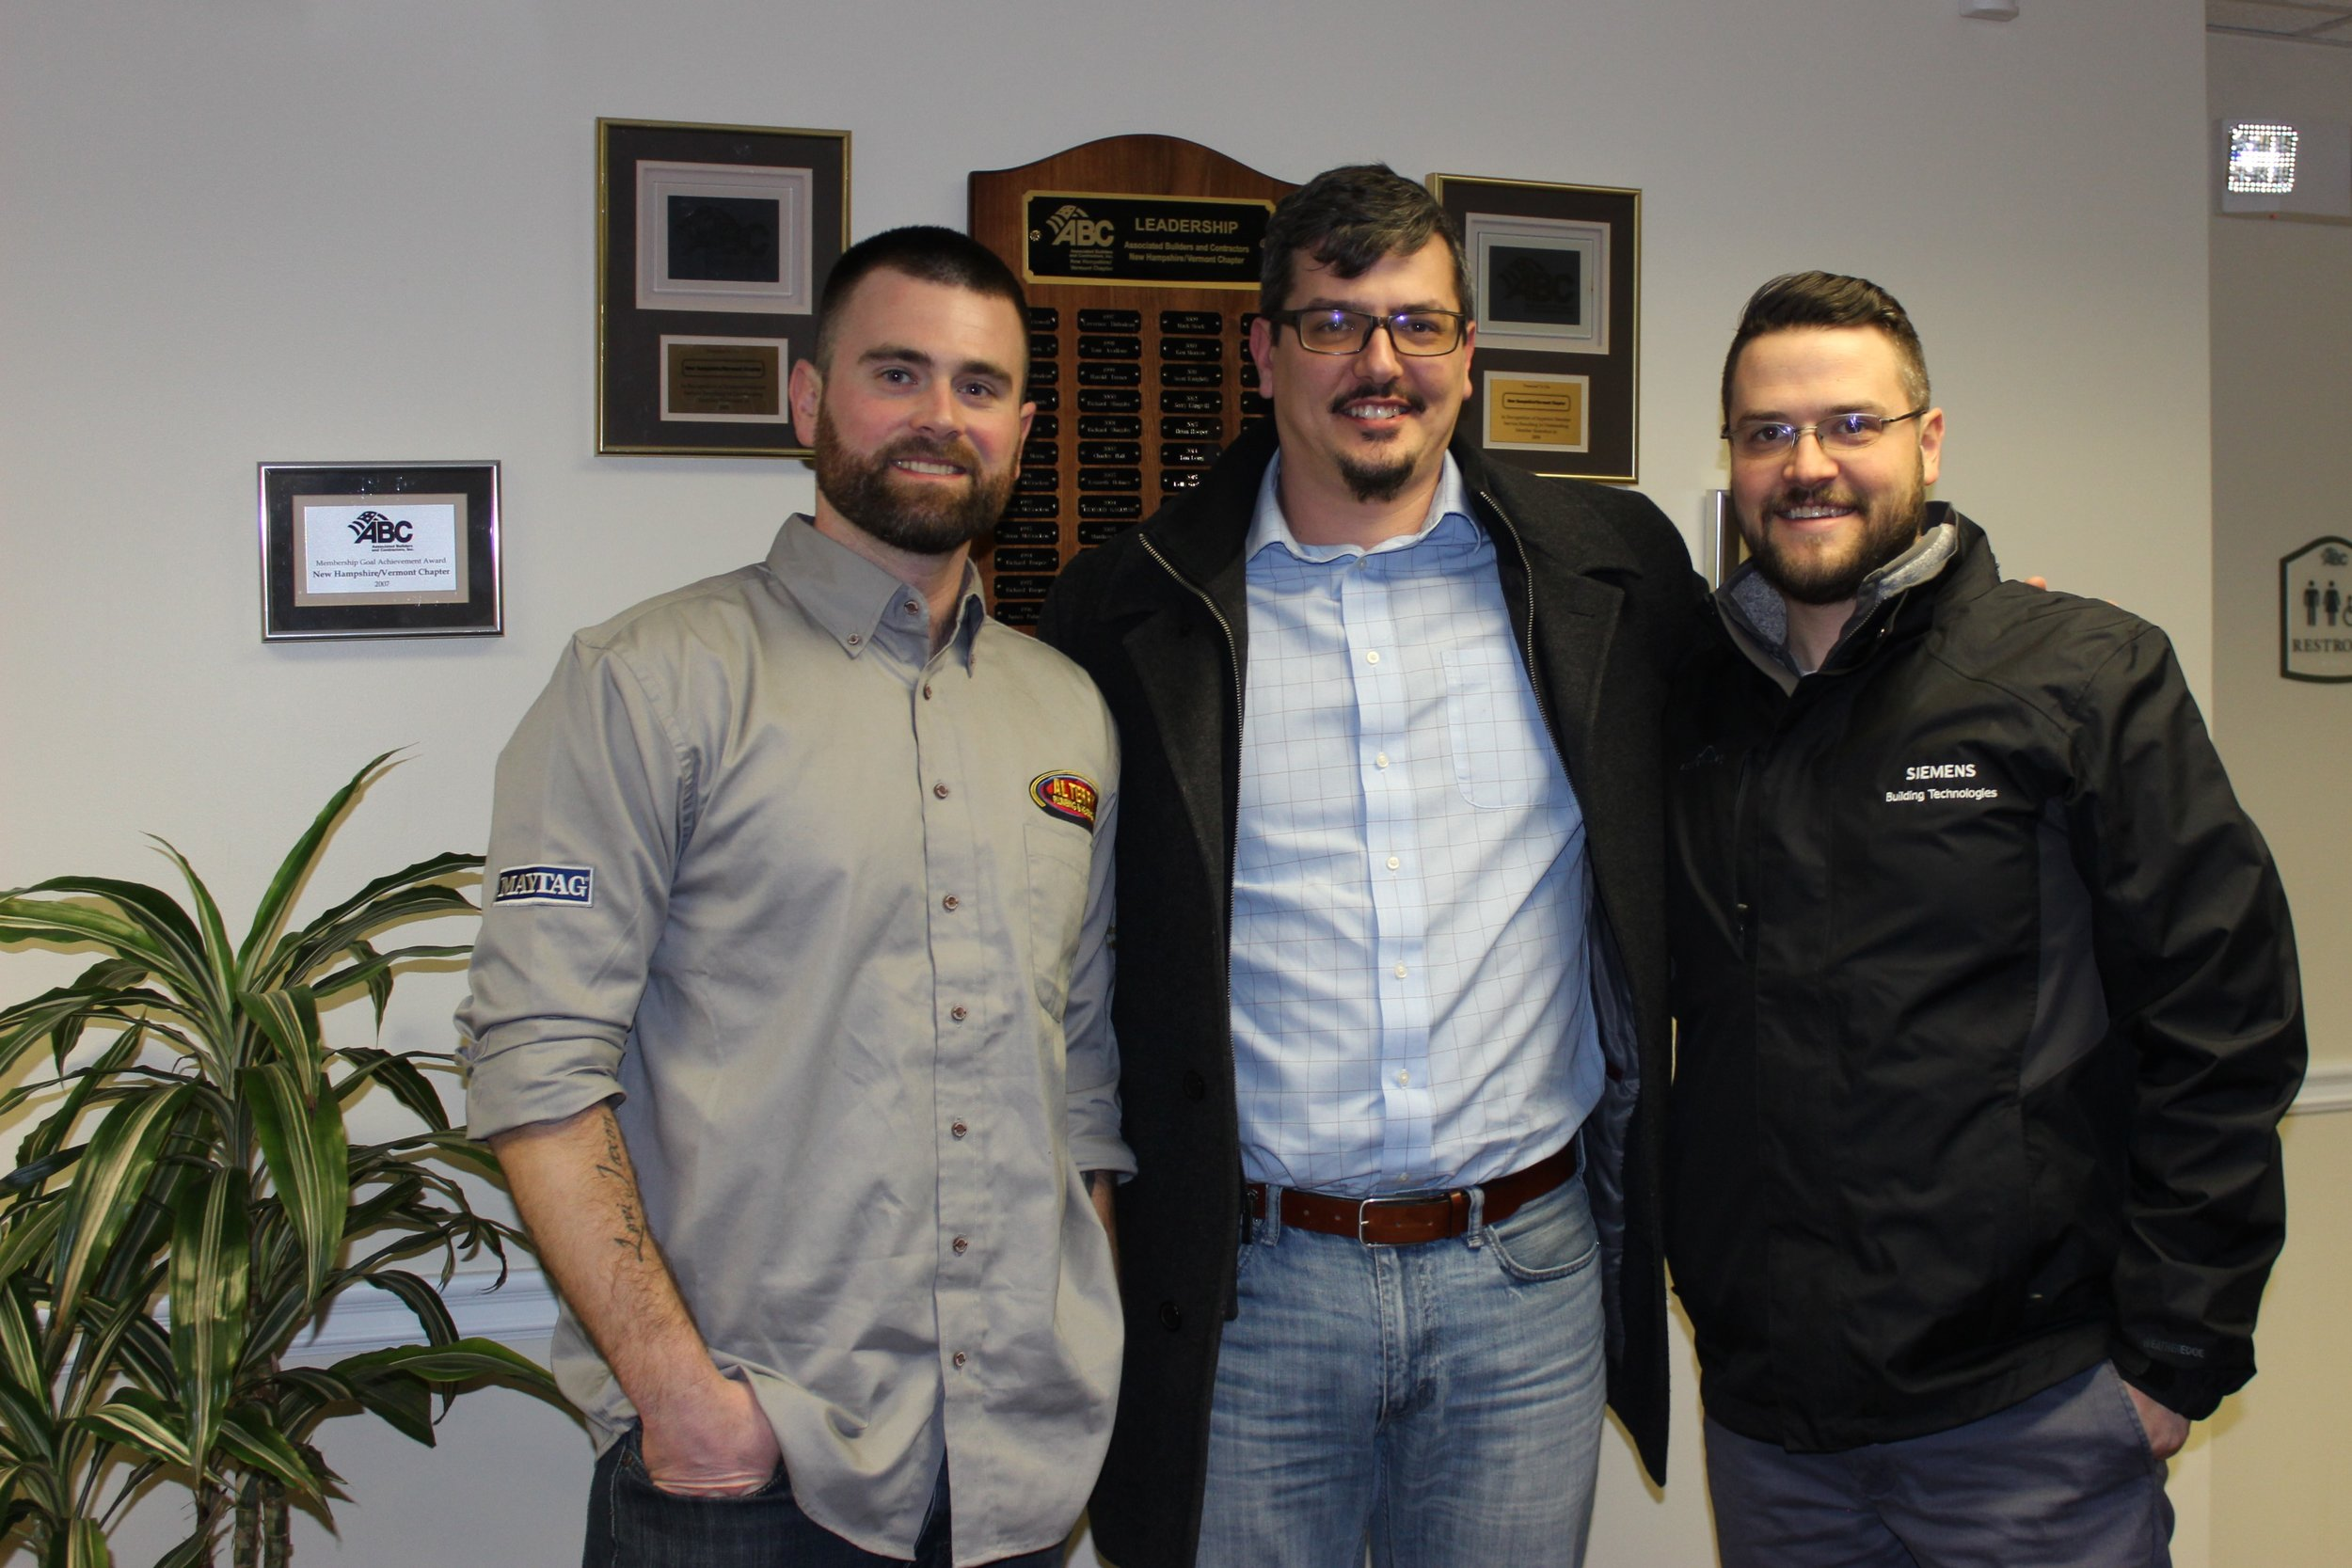 New ABC YPG Steering Committee members from left to right: Rick Baron, Al Terry Plumbing and Heating, Inc; Joel Pickering, Denron Plumbing and HVAC, LLC; and Sean Roukey, Siemens Building Technologies